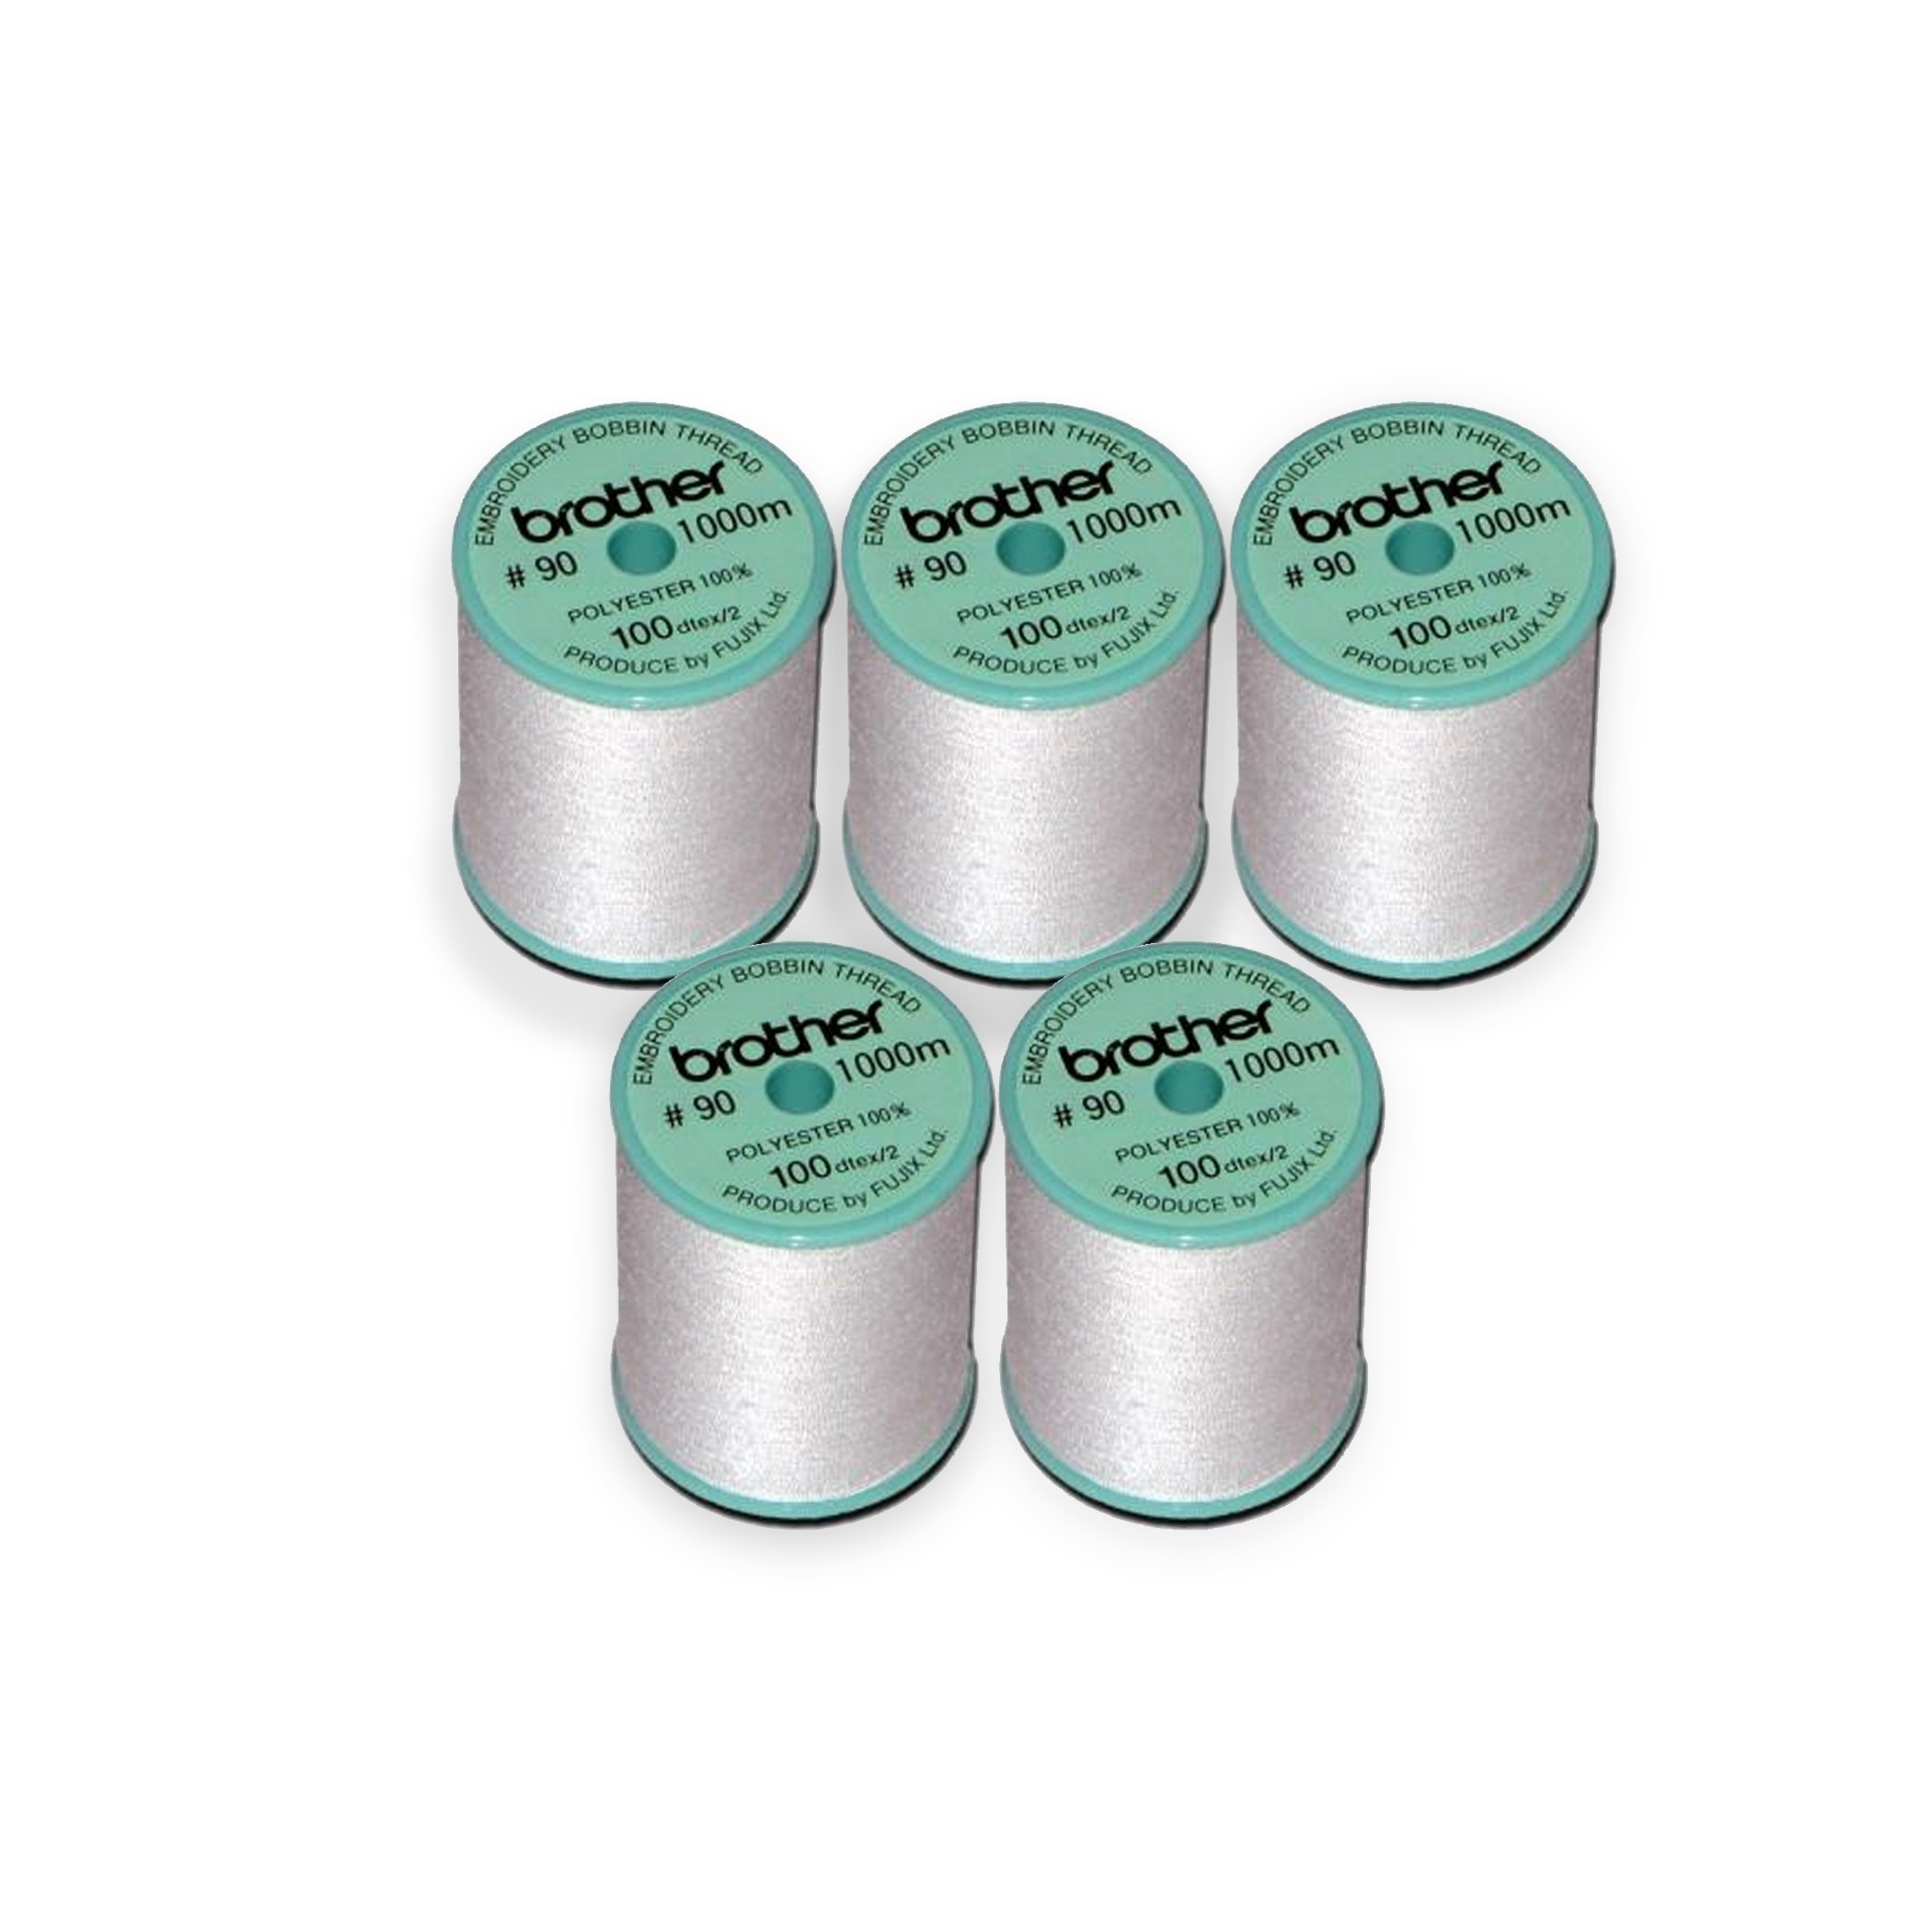 Brother 5 Pack EBTPE 90-Weight Embroidery Thread, White by Brother